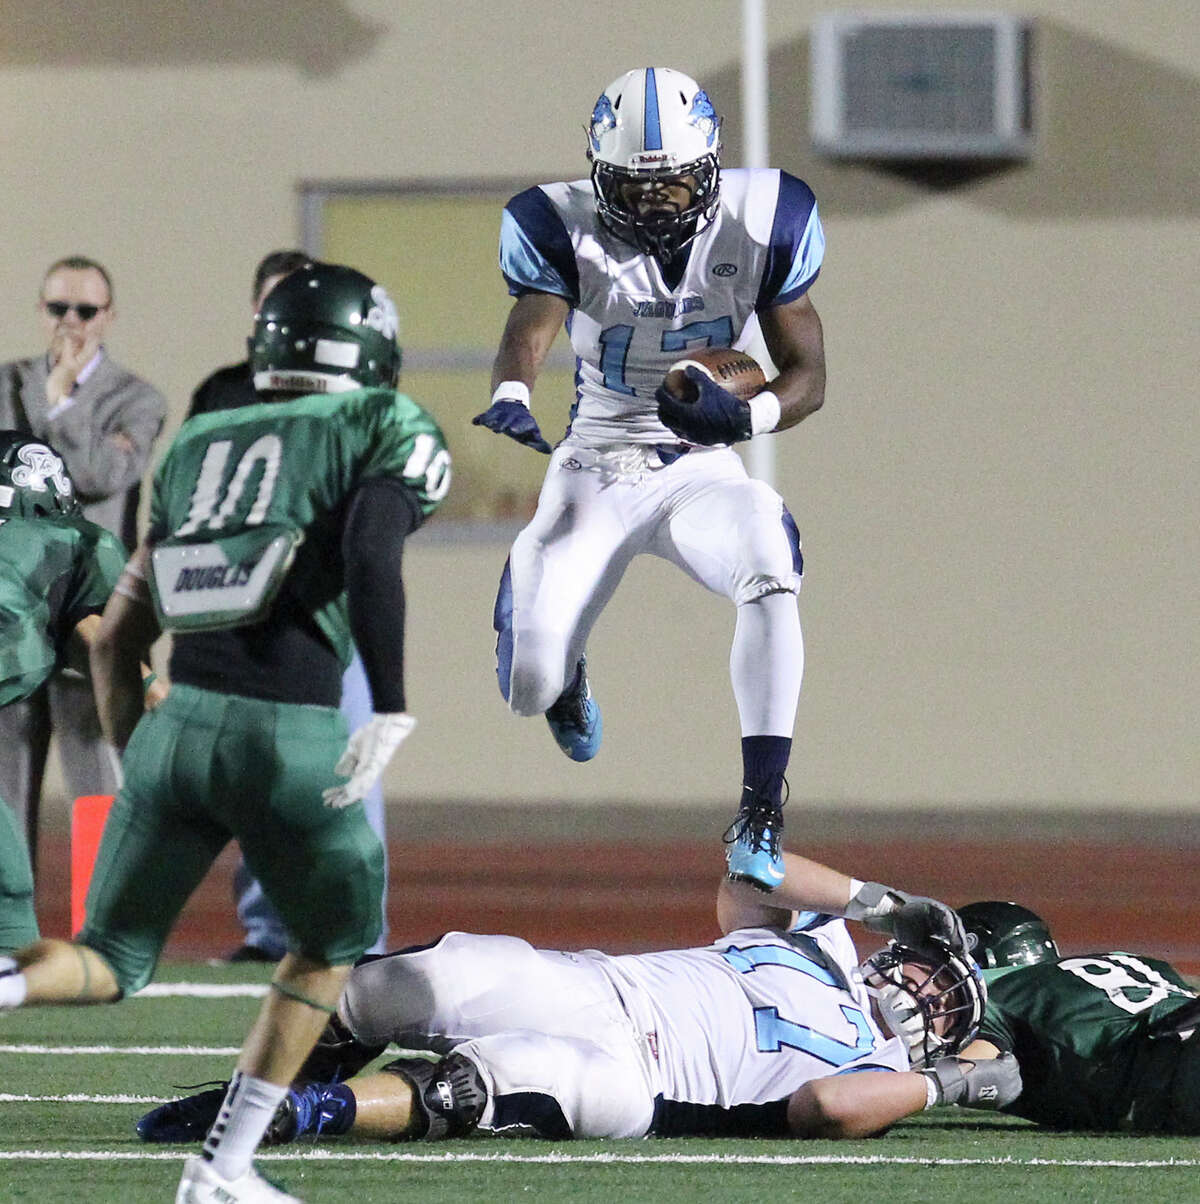 Johnson's Braedon Williams (17) leaps over players during the game against the Reagan Rattlers at Comalander Stadium on Friday, Oct. 25, 2013.